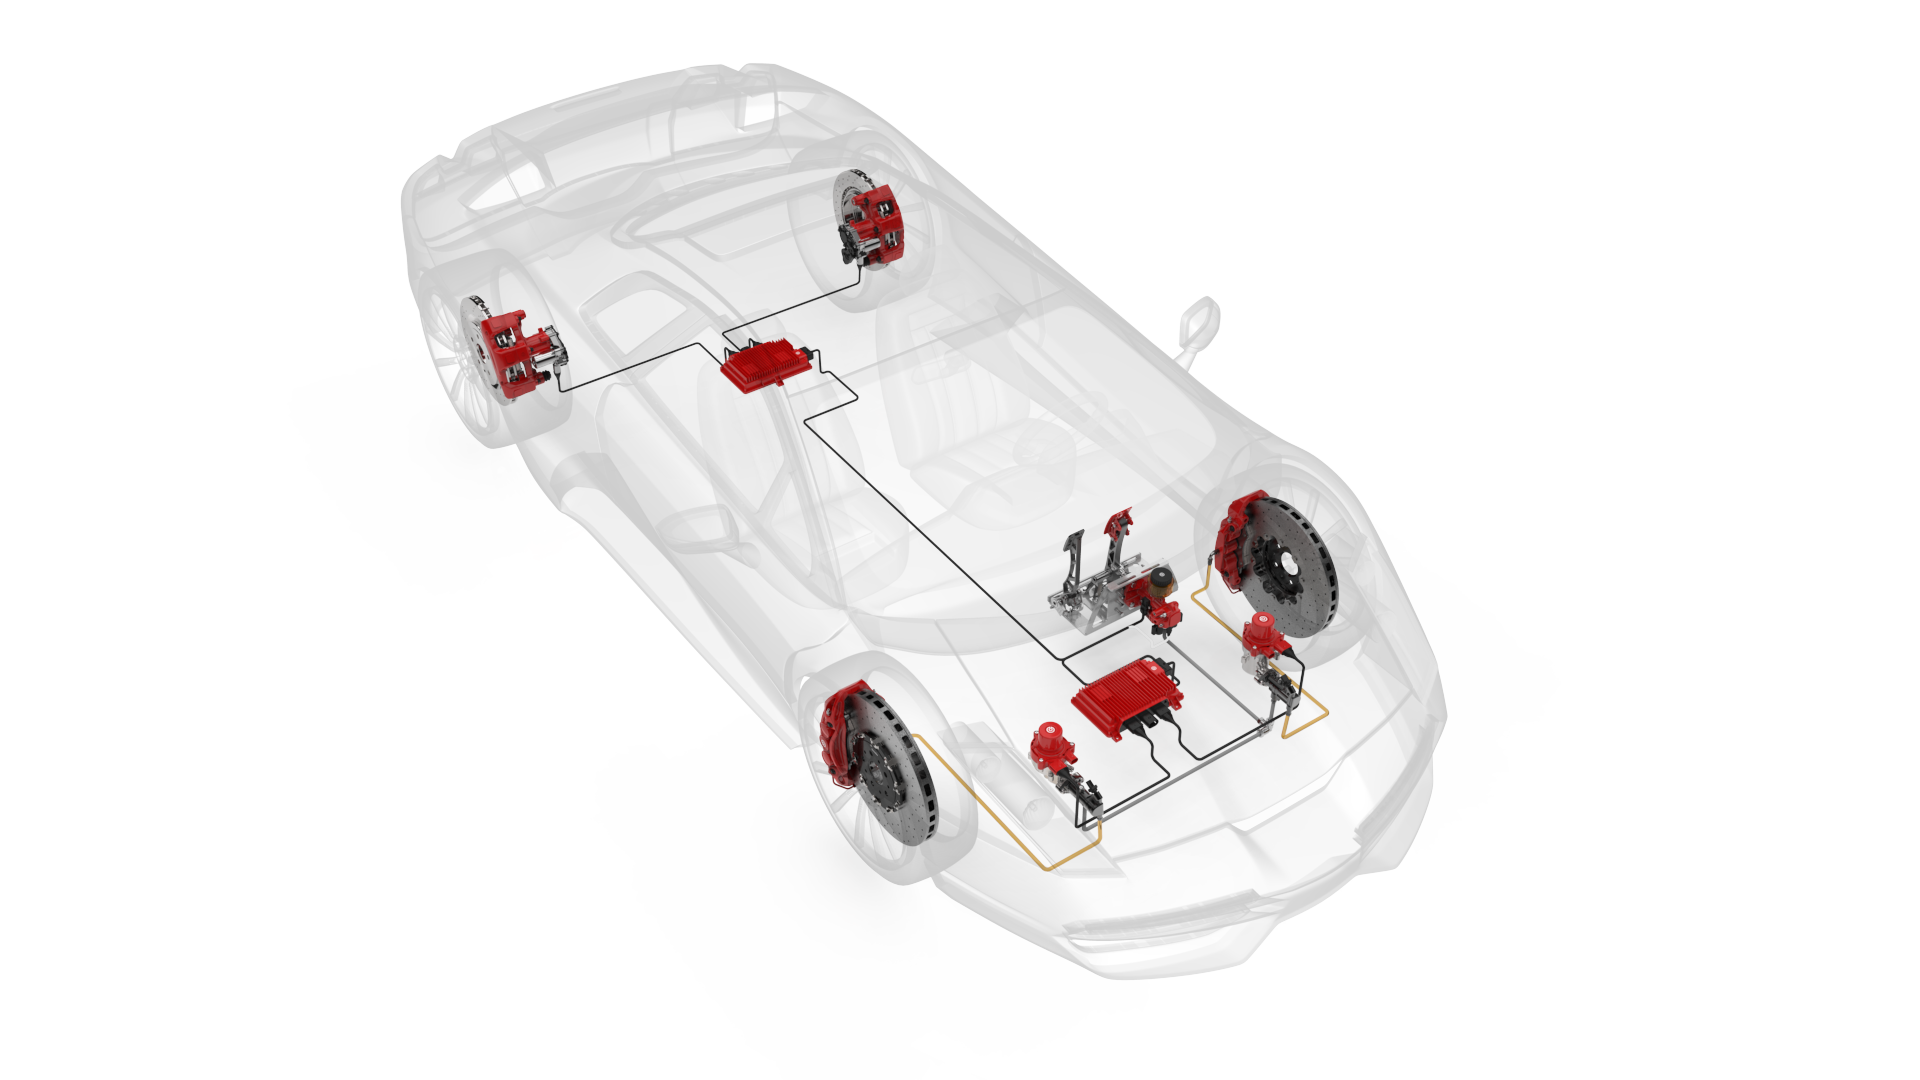 Here Is The Brake Of Future Brembo Official Website Gm Vehicle Wiring Pigtails Energy Recovery Reduces Both Weight And Emissions Which Have Become Increasingly Important Braking System Can Play A Decisive Role